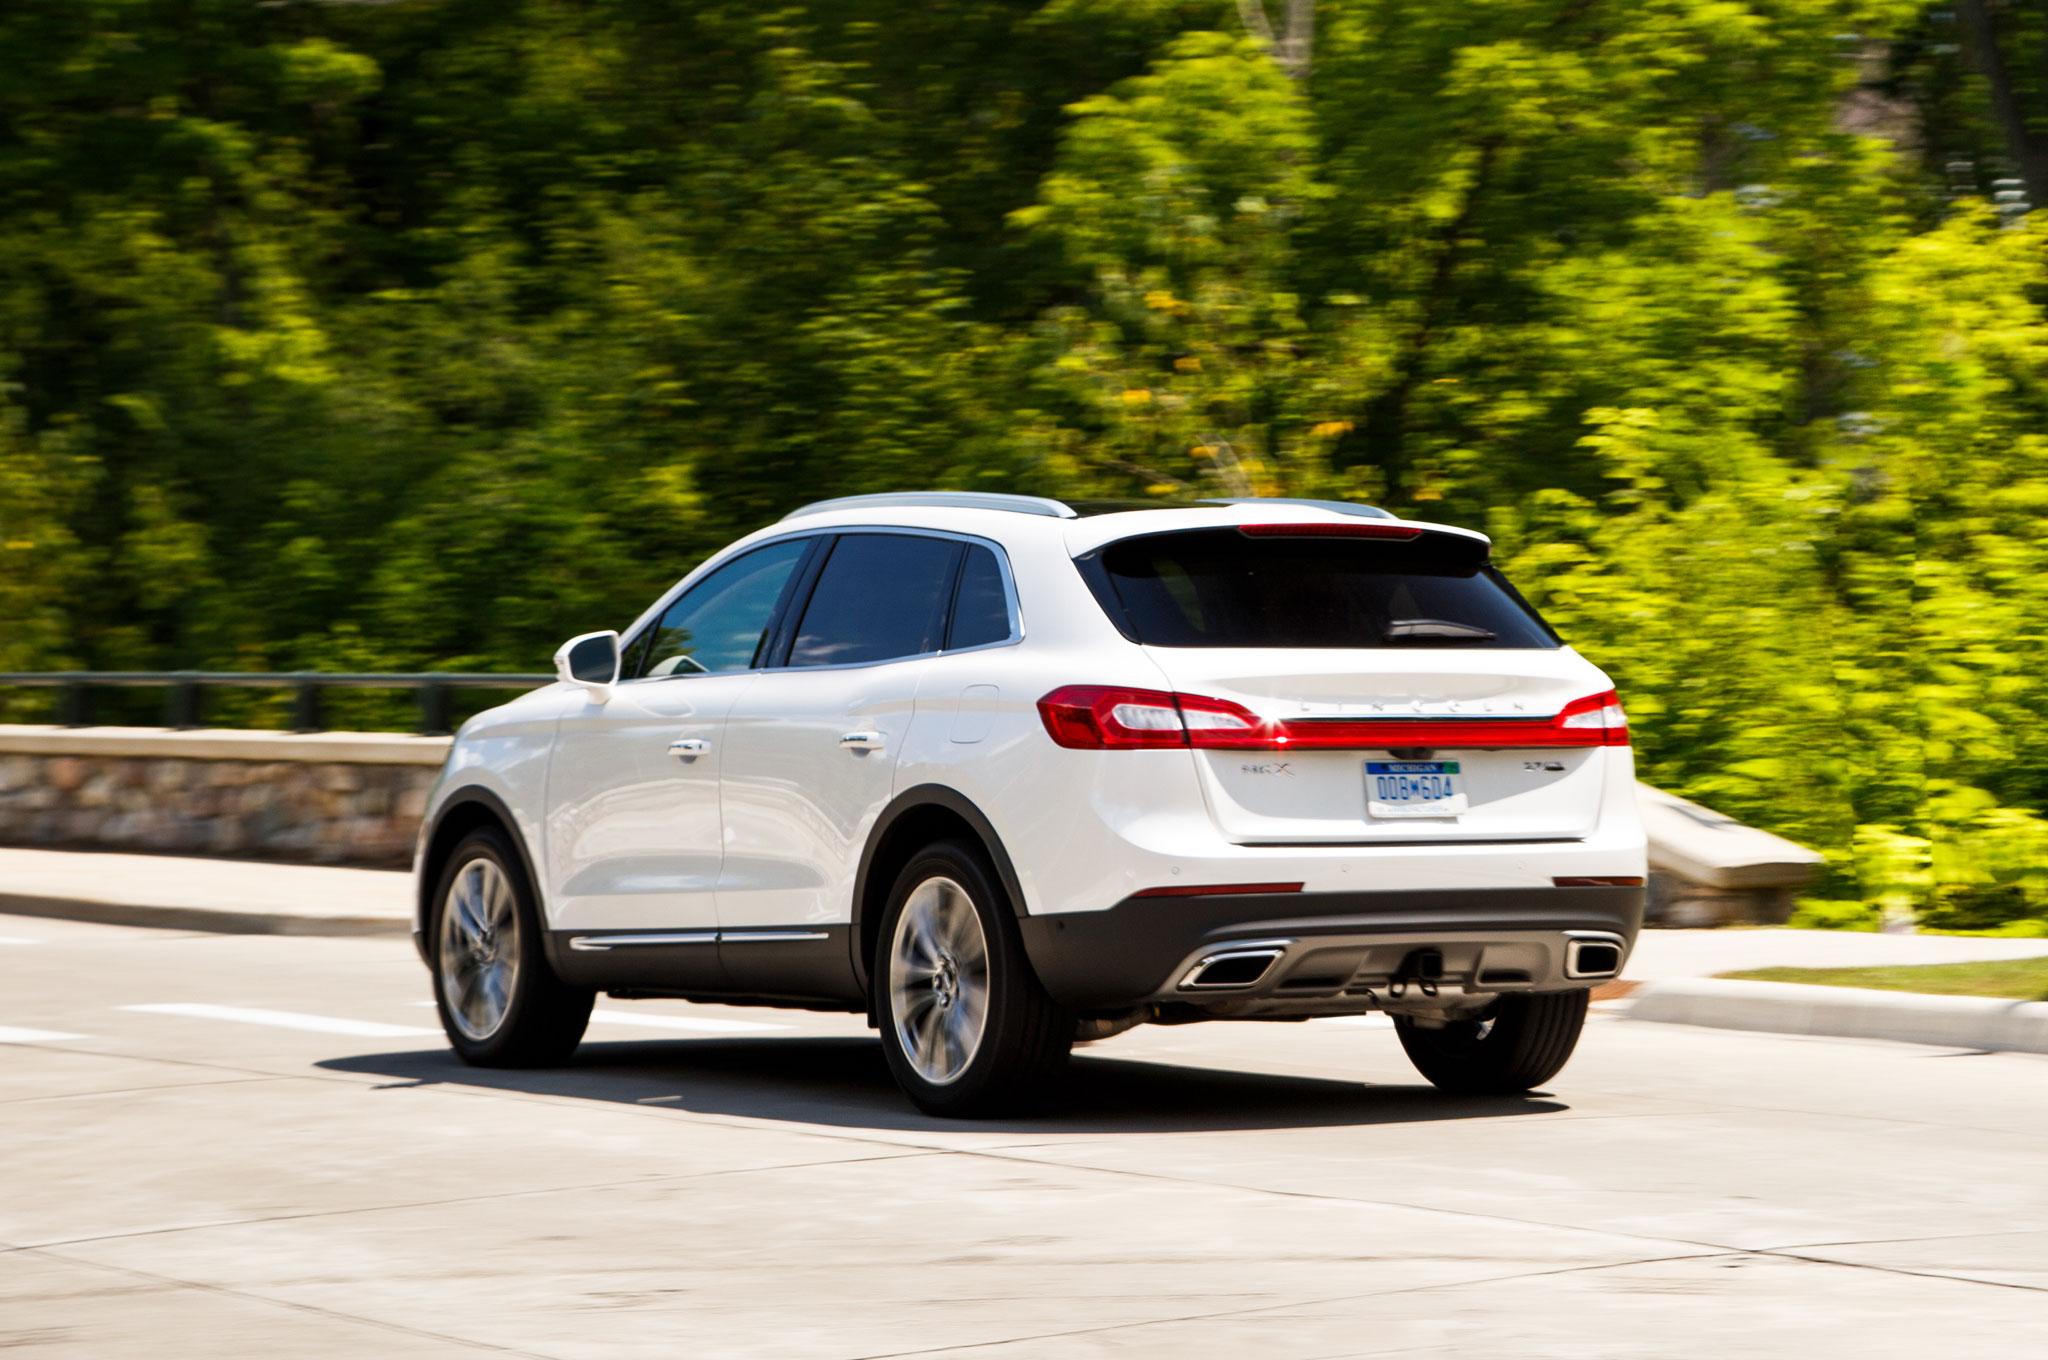 http://st.automobilemag.com/uploads/sites/11/2015/08/2016-Lincoln-MKX-rear-three-quarter-in-motion-01.jpg